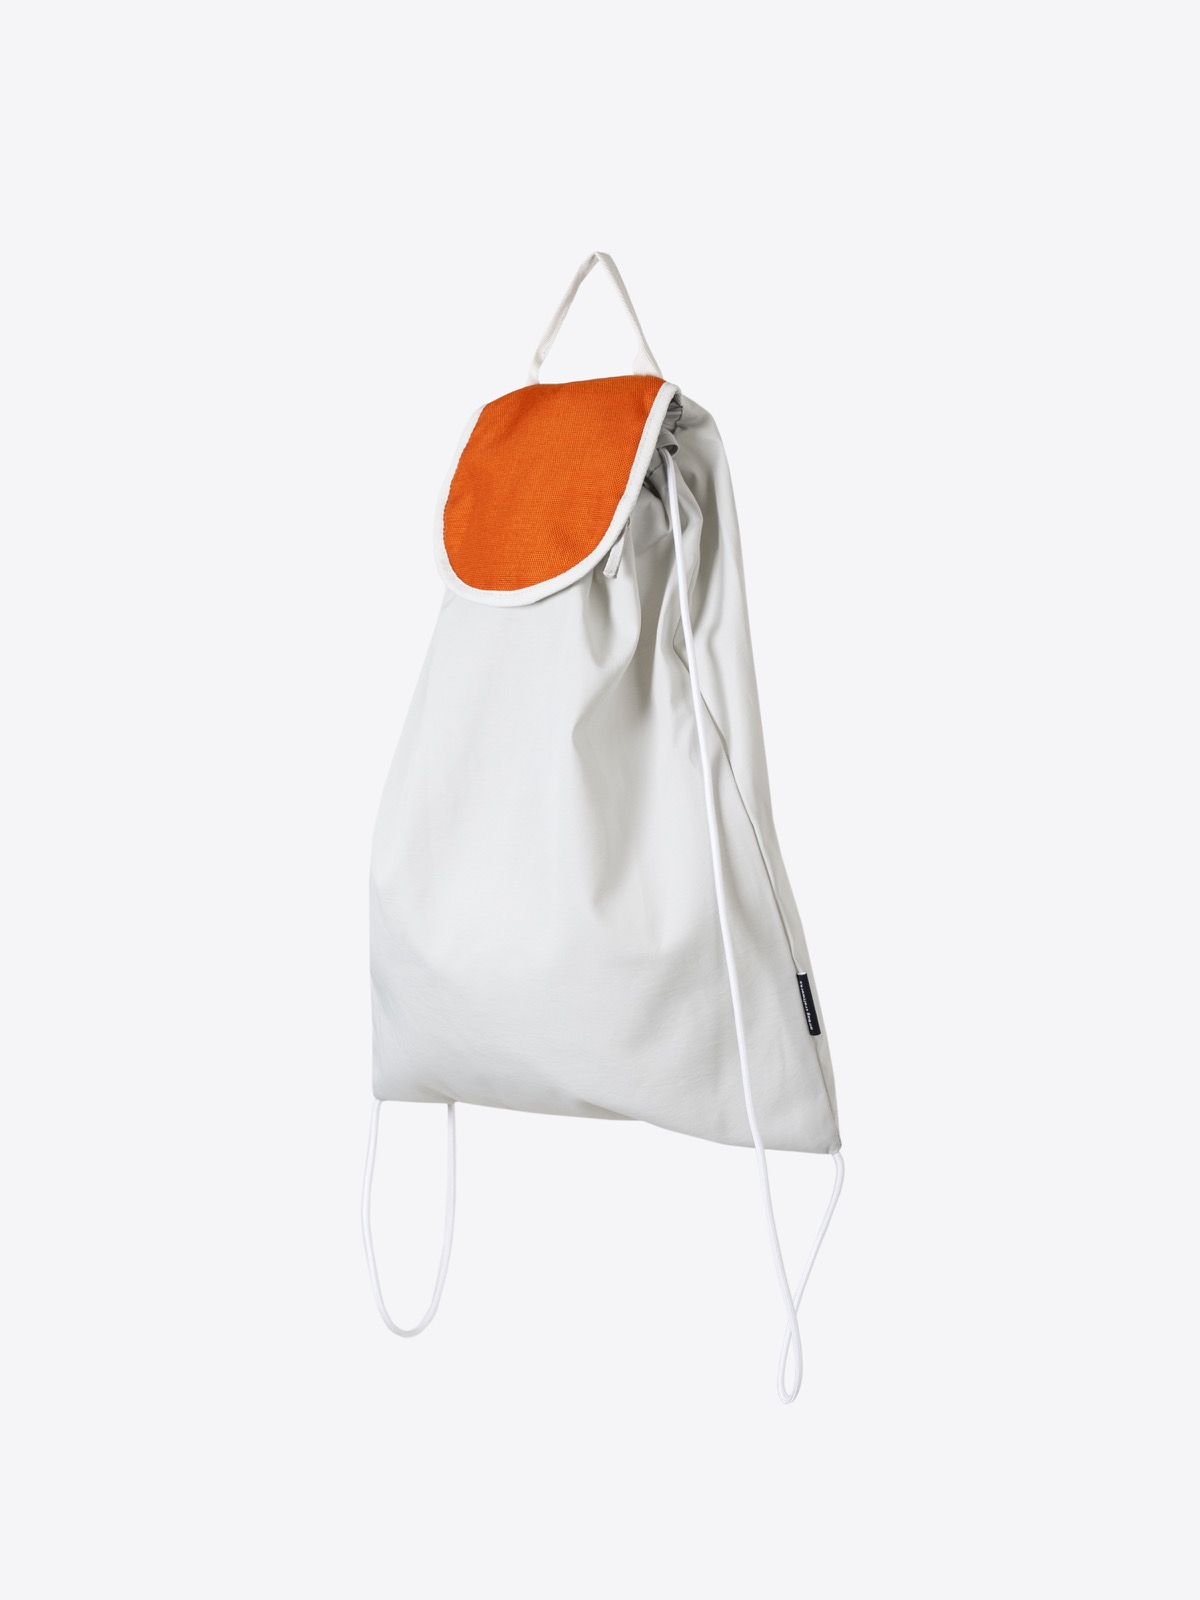 airbag craftworks white / orange